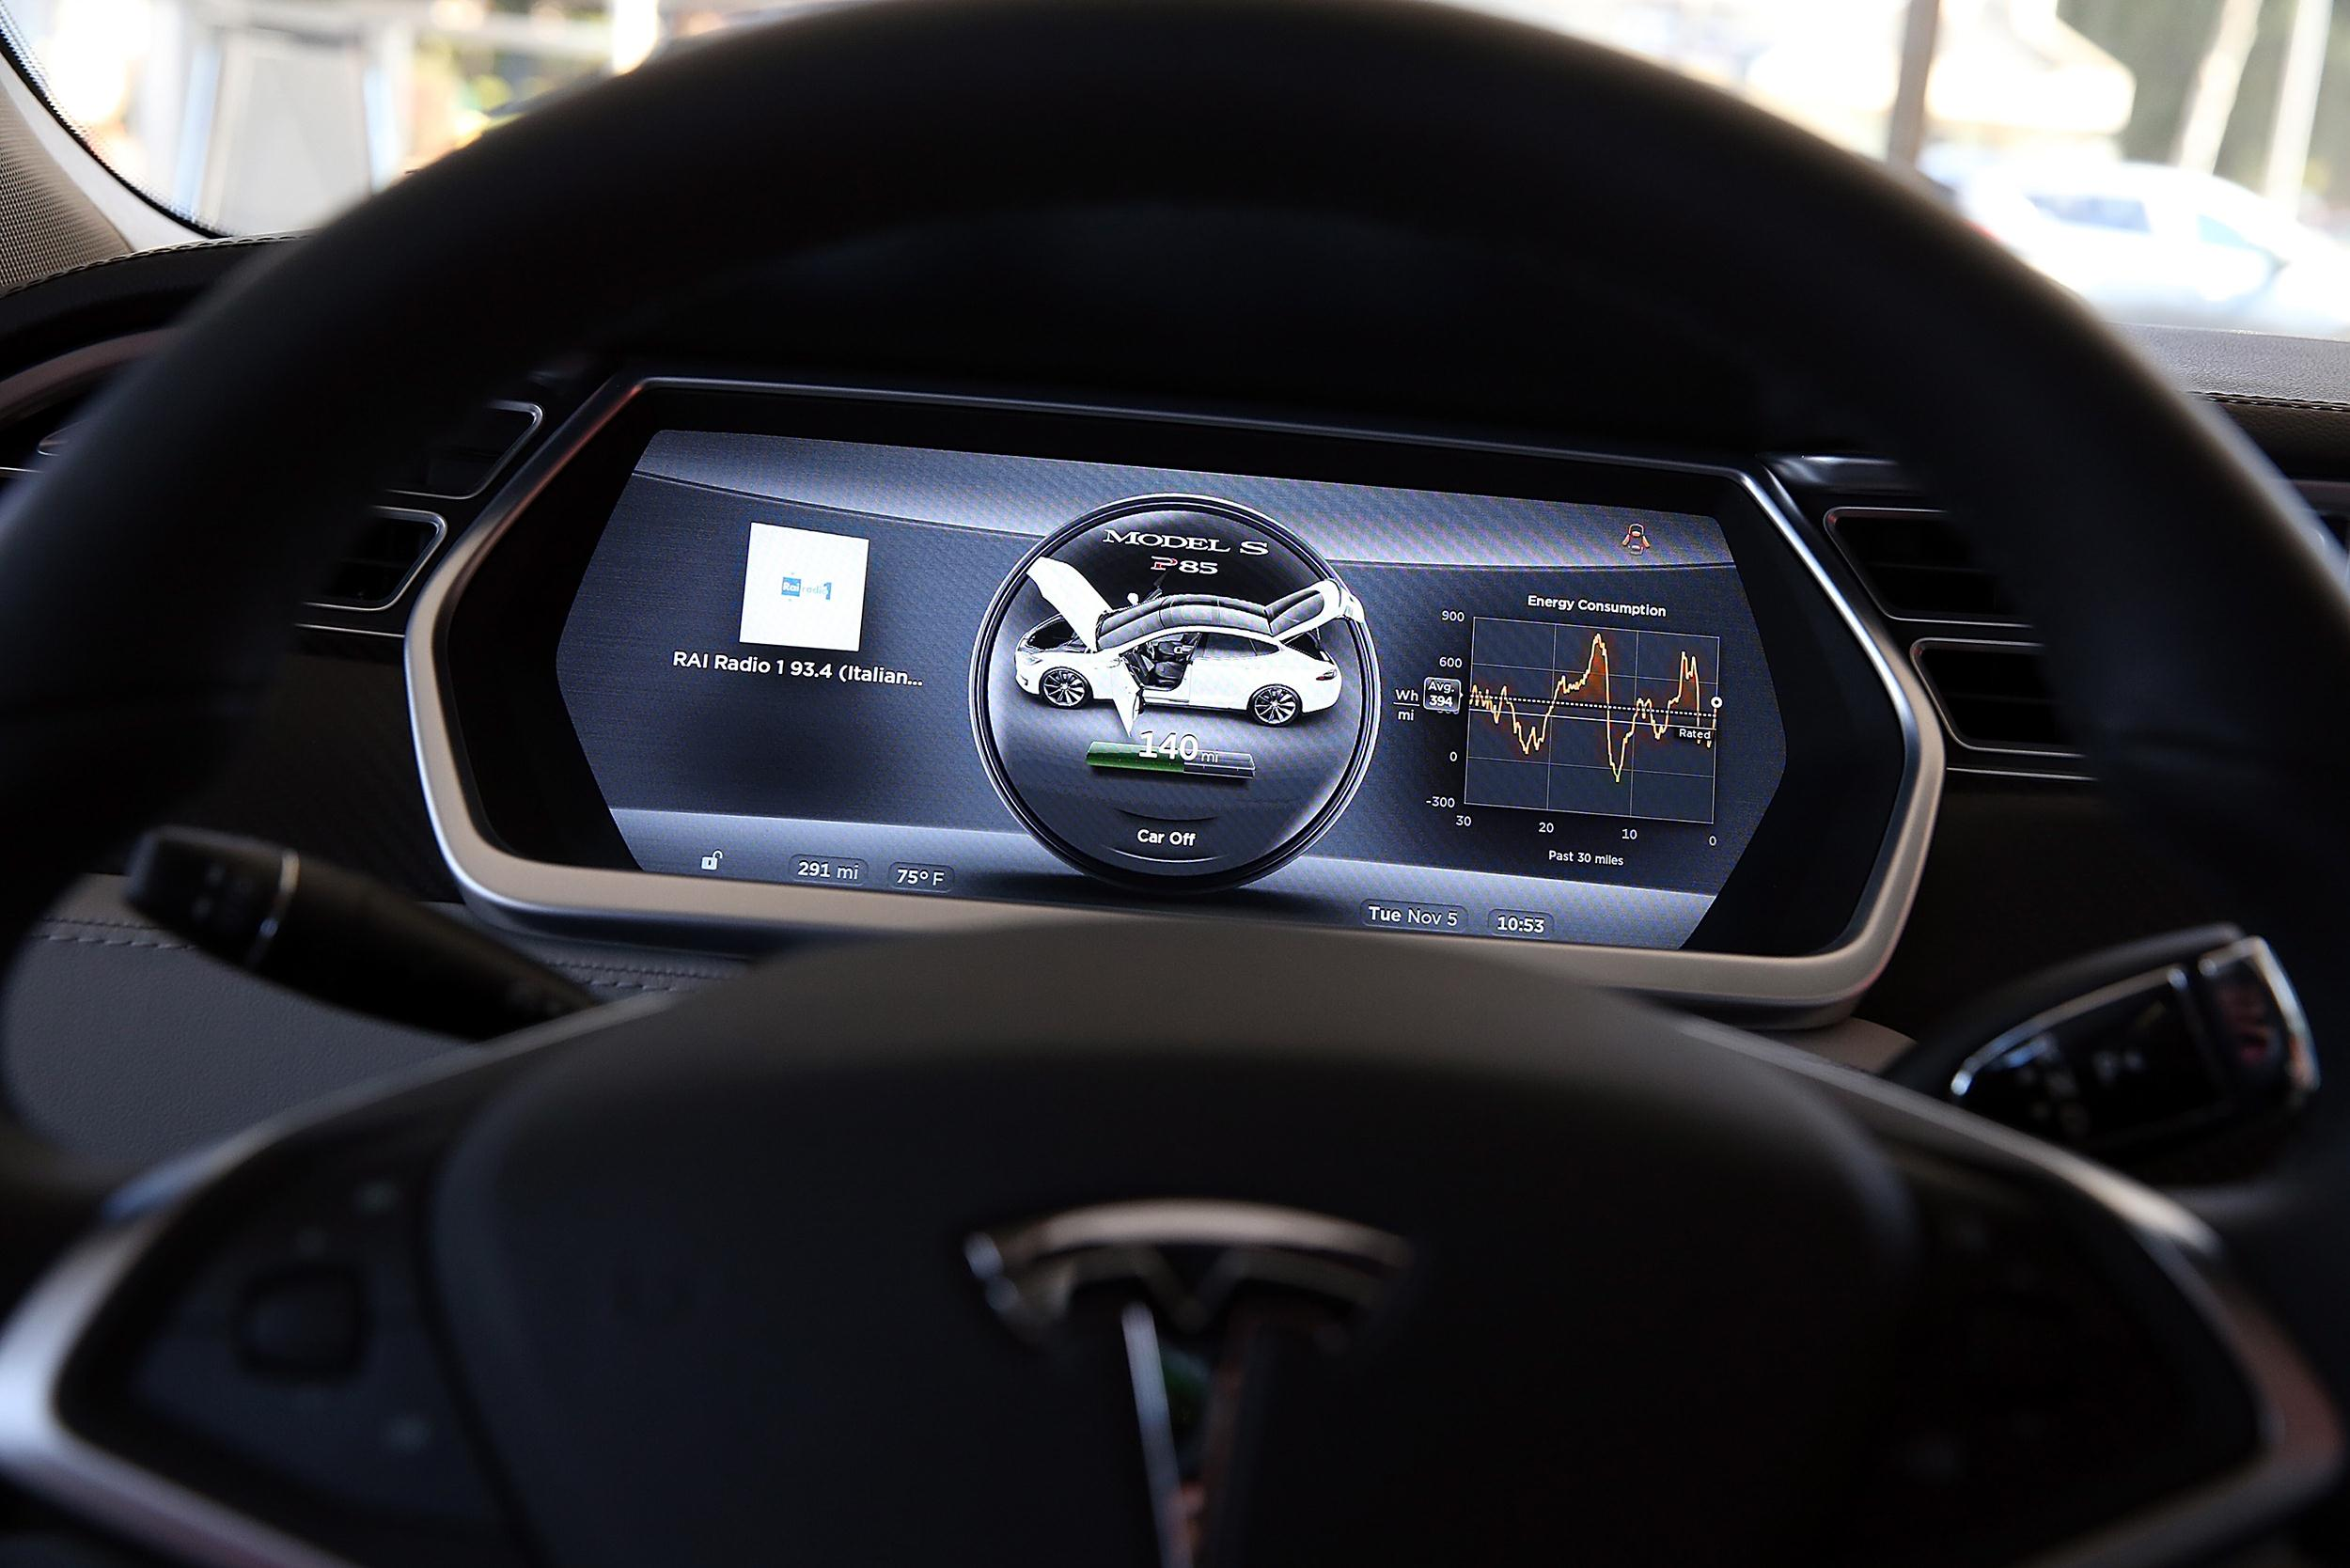 Win and Drive Away in a 2015 Tesla Model S On Labor Day (While Supporting a Great Cause)